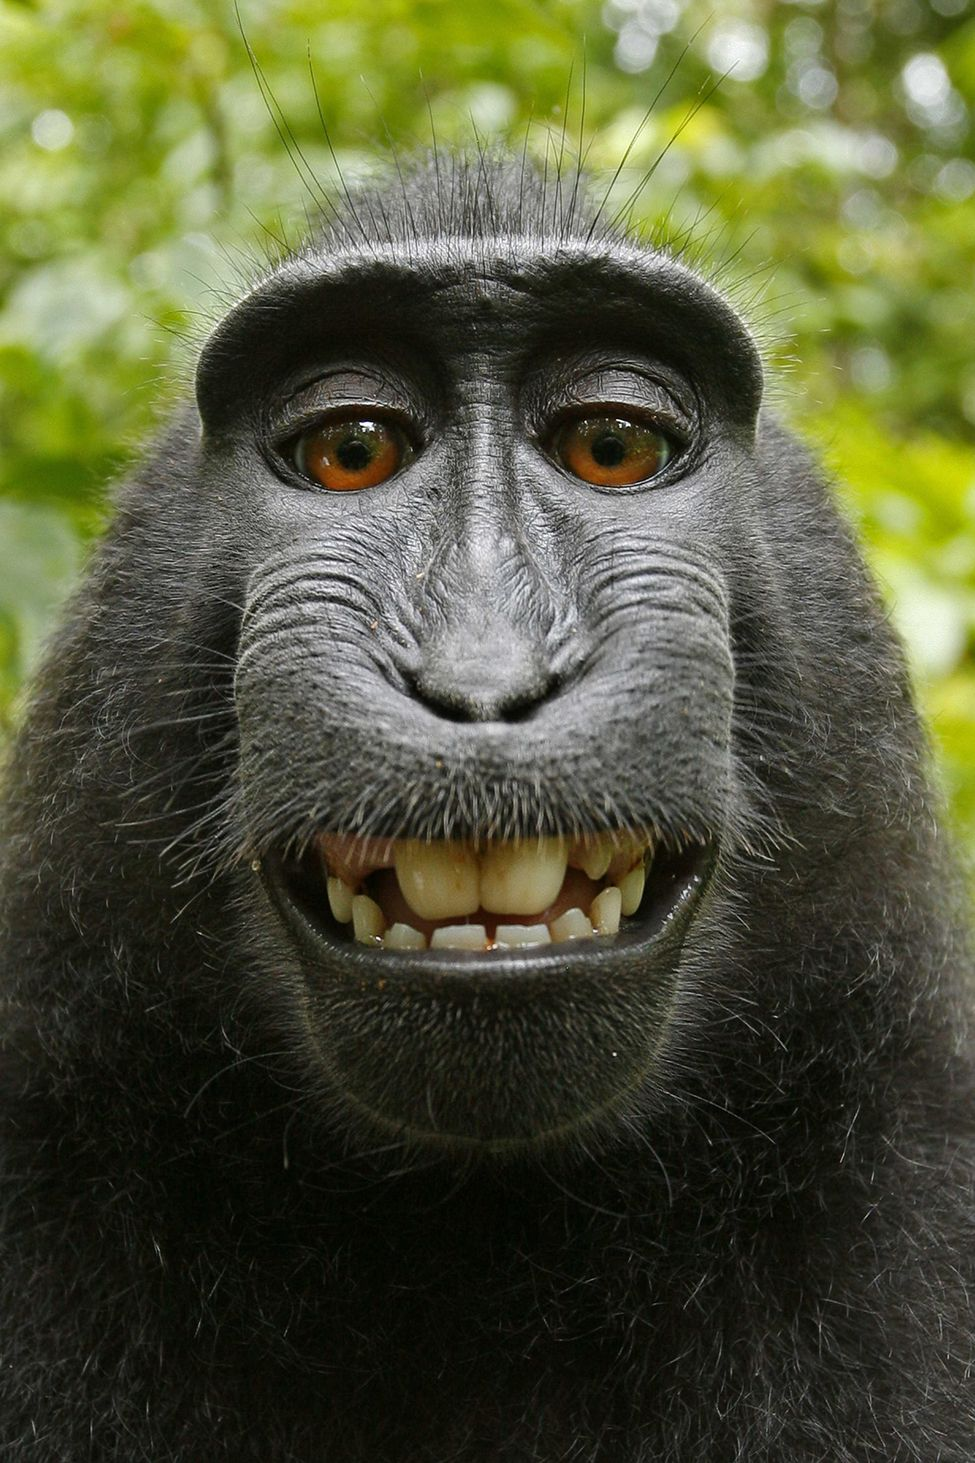 U.S. Copyright Office Denies Monkeys Rights To Their Selfies